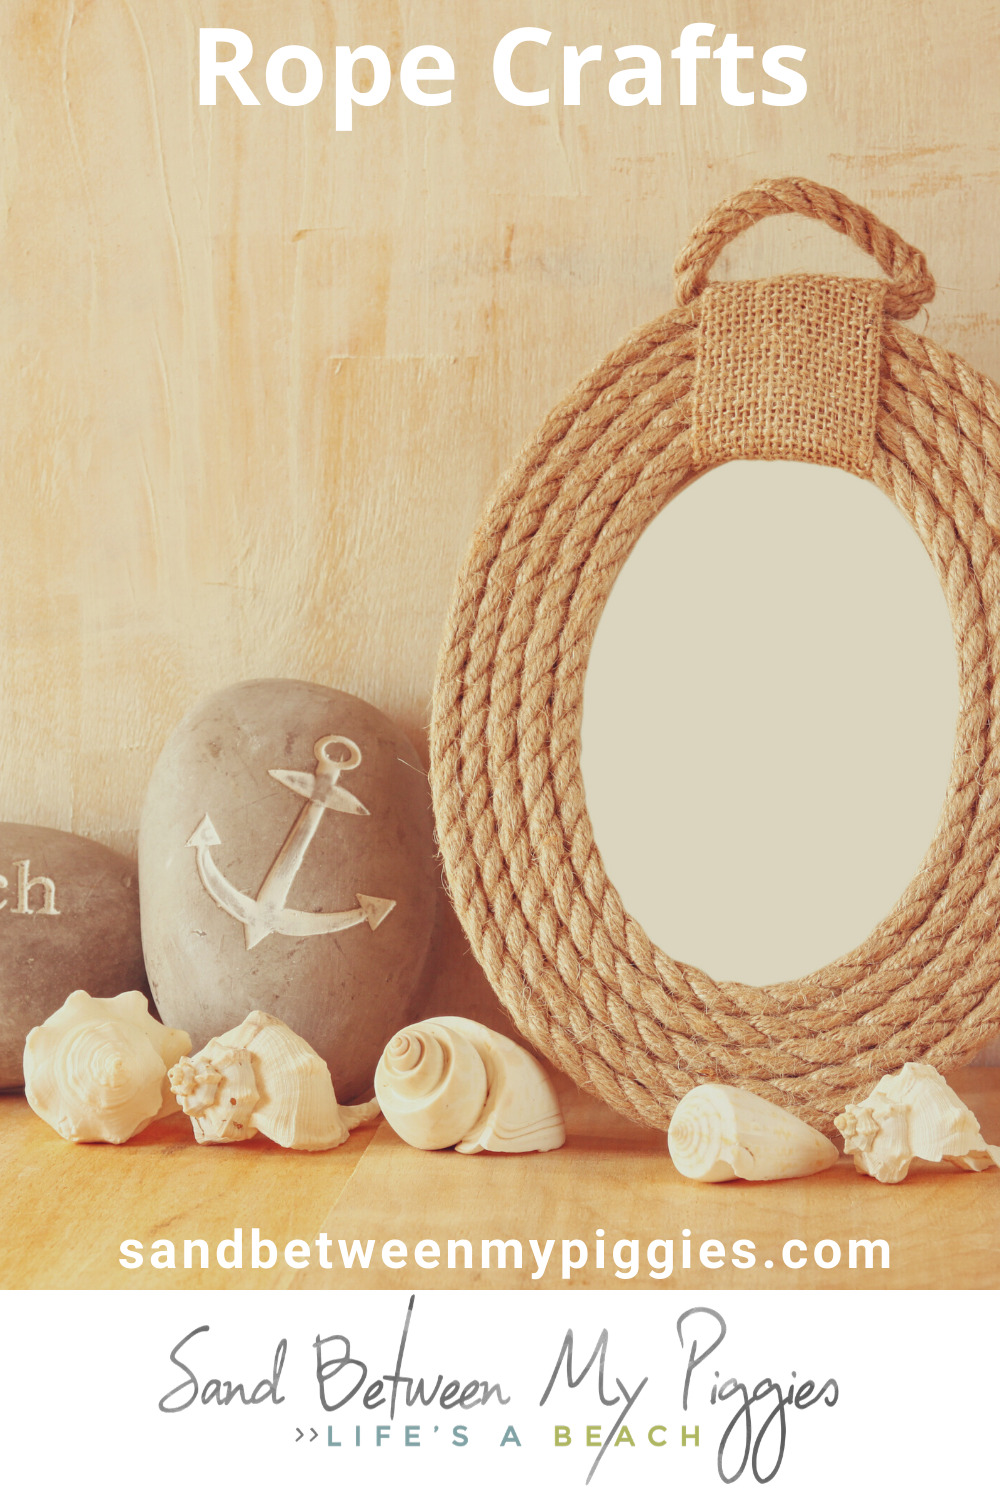 Rope crafts are easy to do and create a unique look for home decor whether it be rustic or nautical. Learn how to hang things from rope, or use it to create your own custom decor. Read on for more details. #ropecrafts #ropecraftsnautical #ropecraftsdecor #ropecraftsdiy #hangingropecrafts #sandbetweenmypiggiesblog